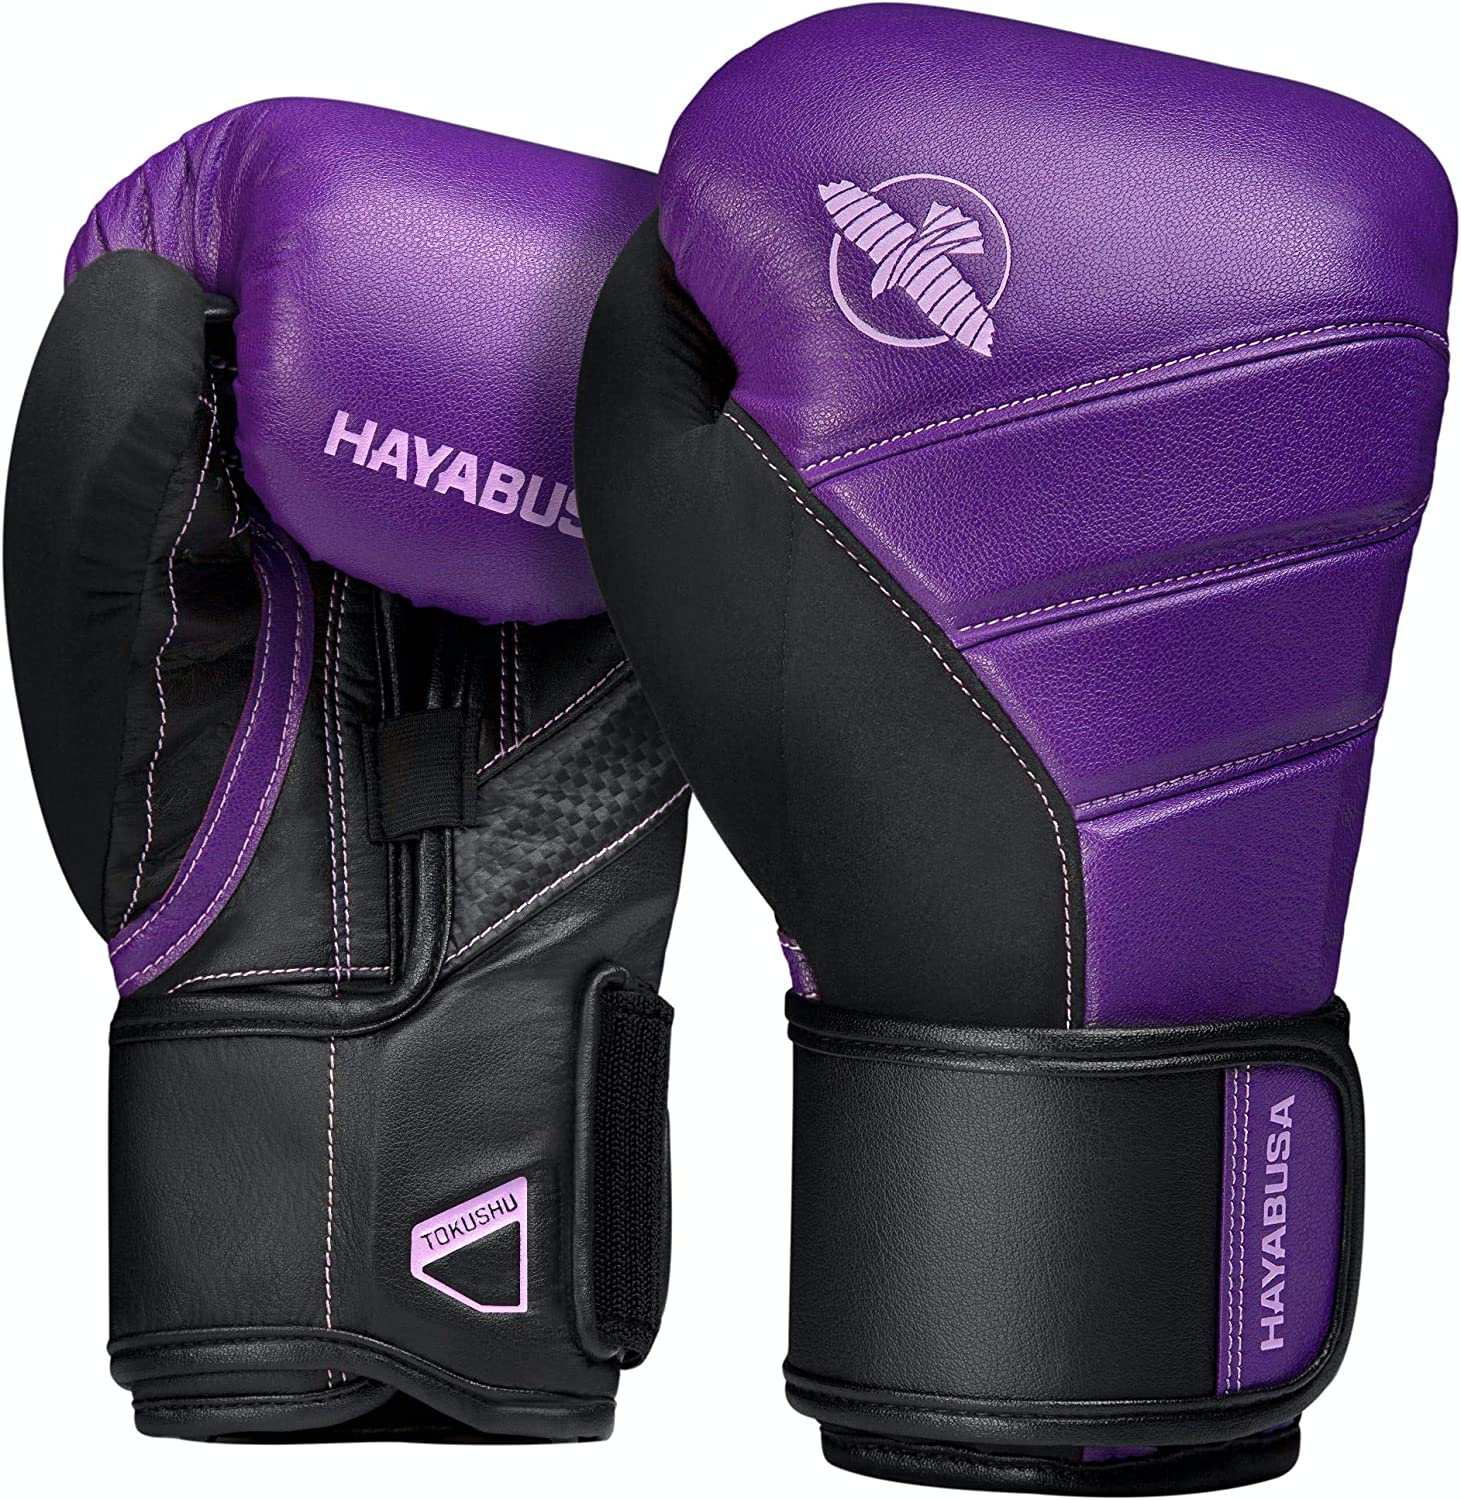 Hayabusa 2021 spring and summer new Memphis Mall T3 Boxing Gloves for Women and Men